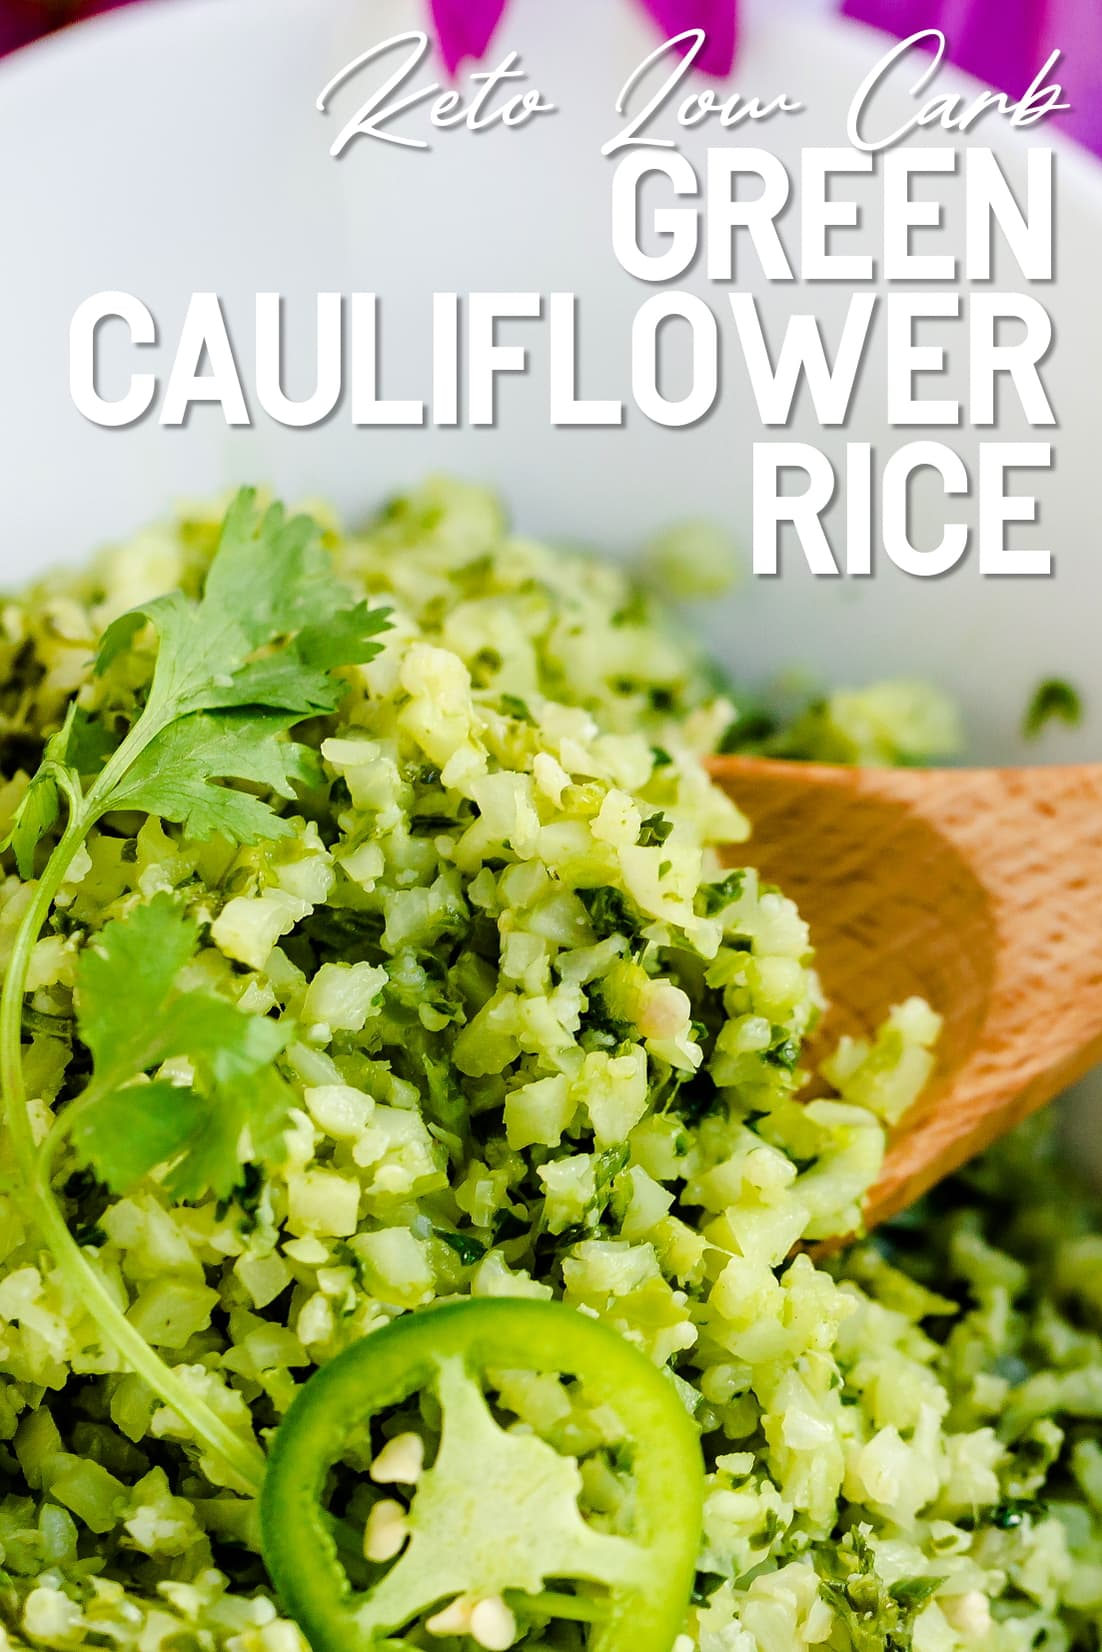 Green Cauliflower Rice Close Up with Spoon